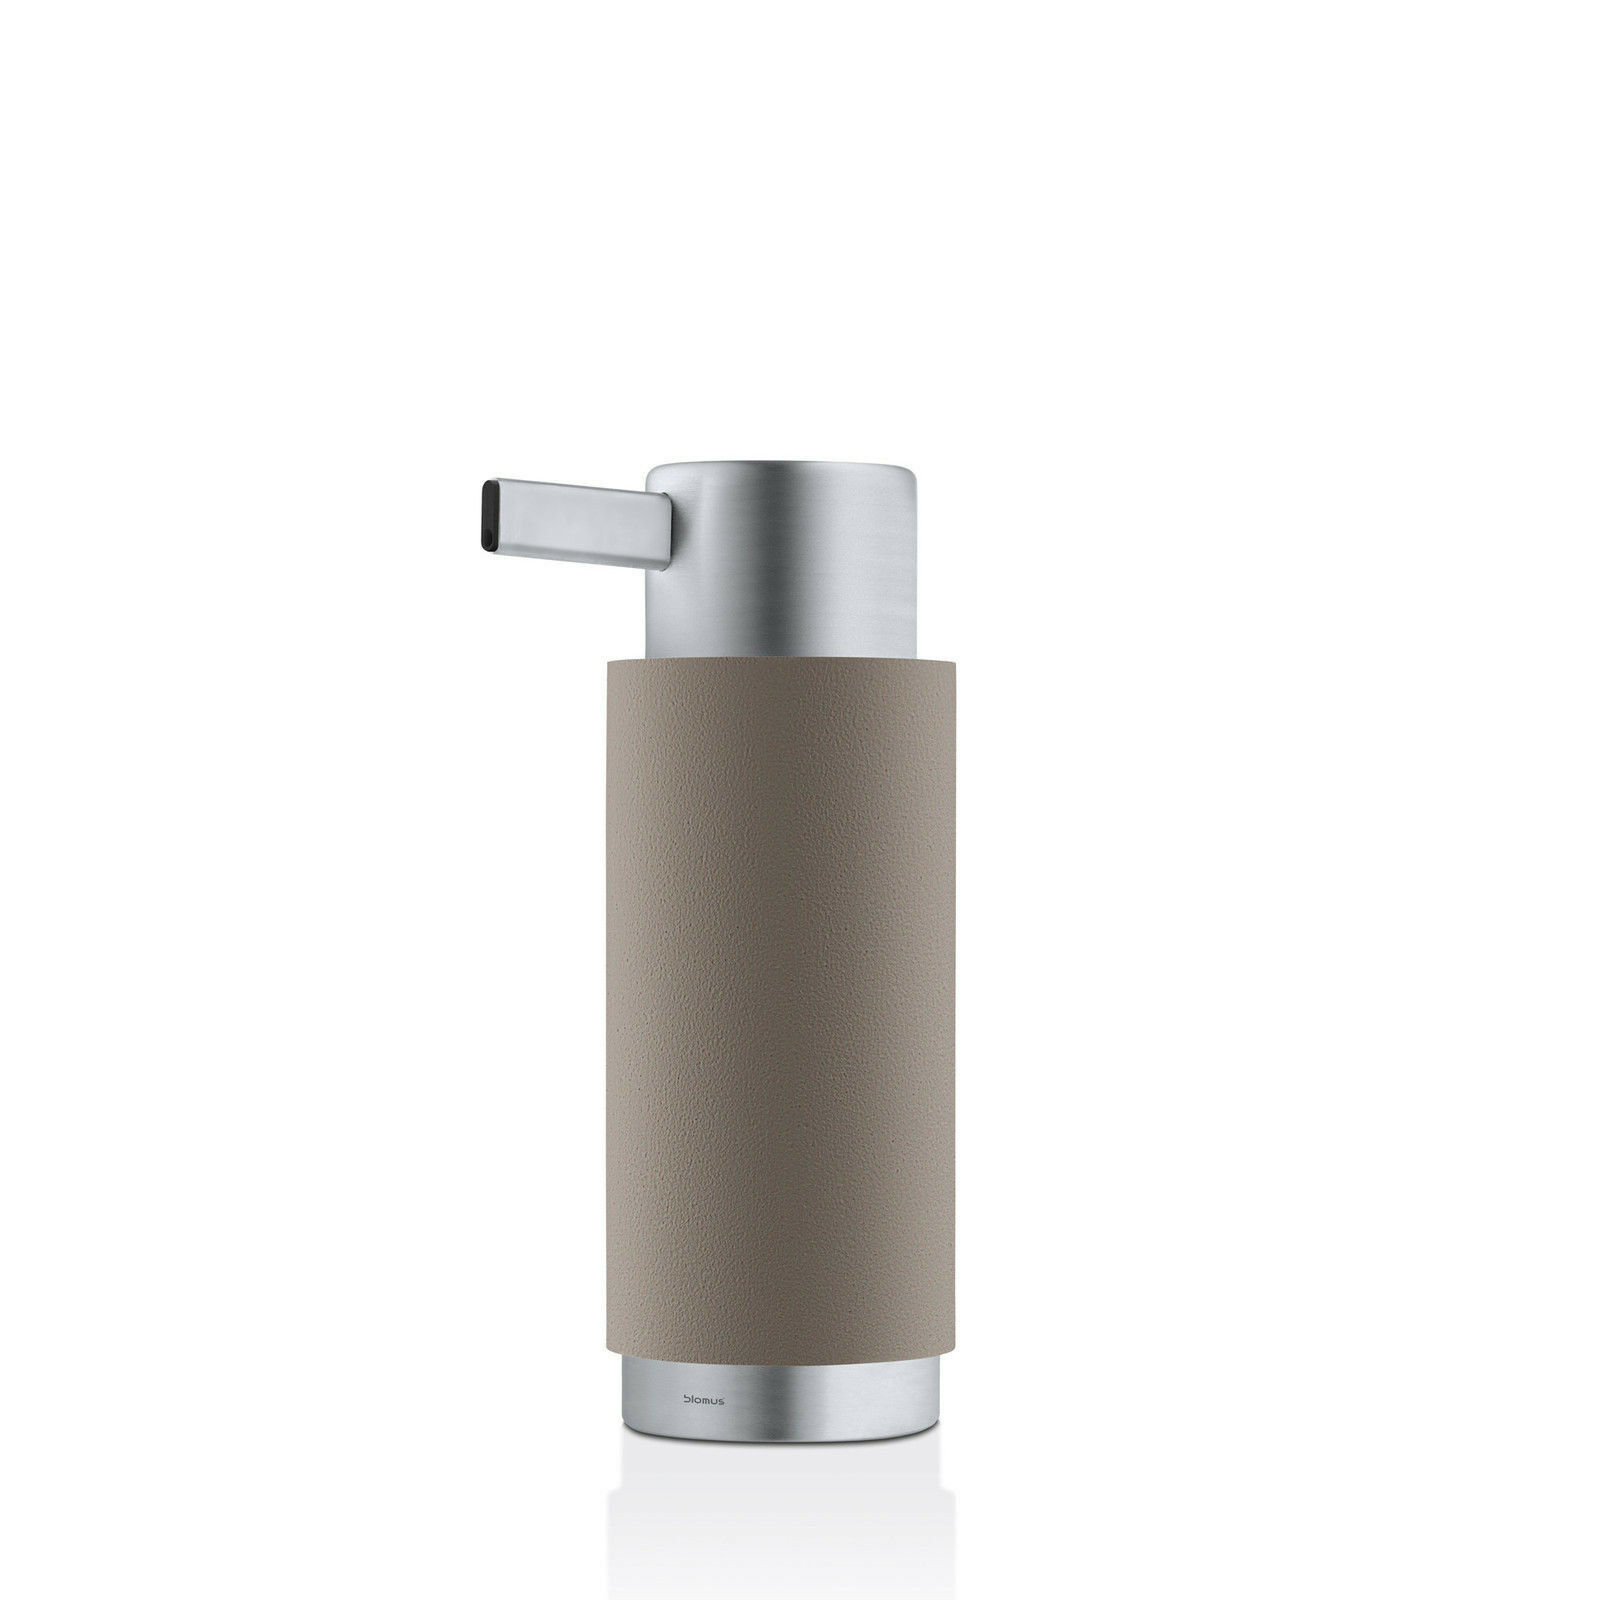 Blomus Ara Soap Dispenser, Taupe Polystone w/ Brushed Stainless Steel Accent